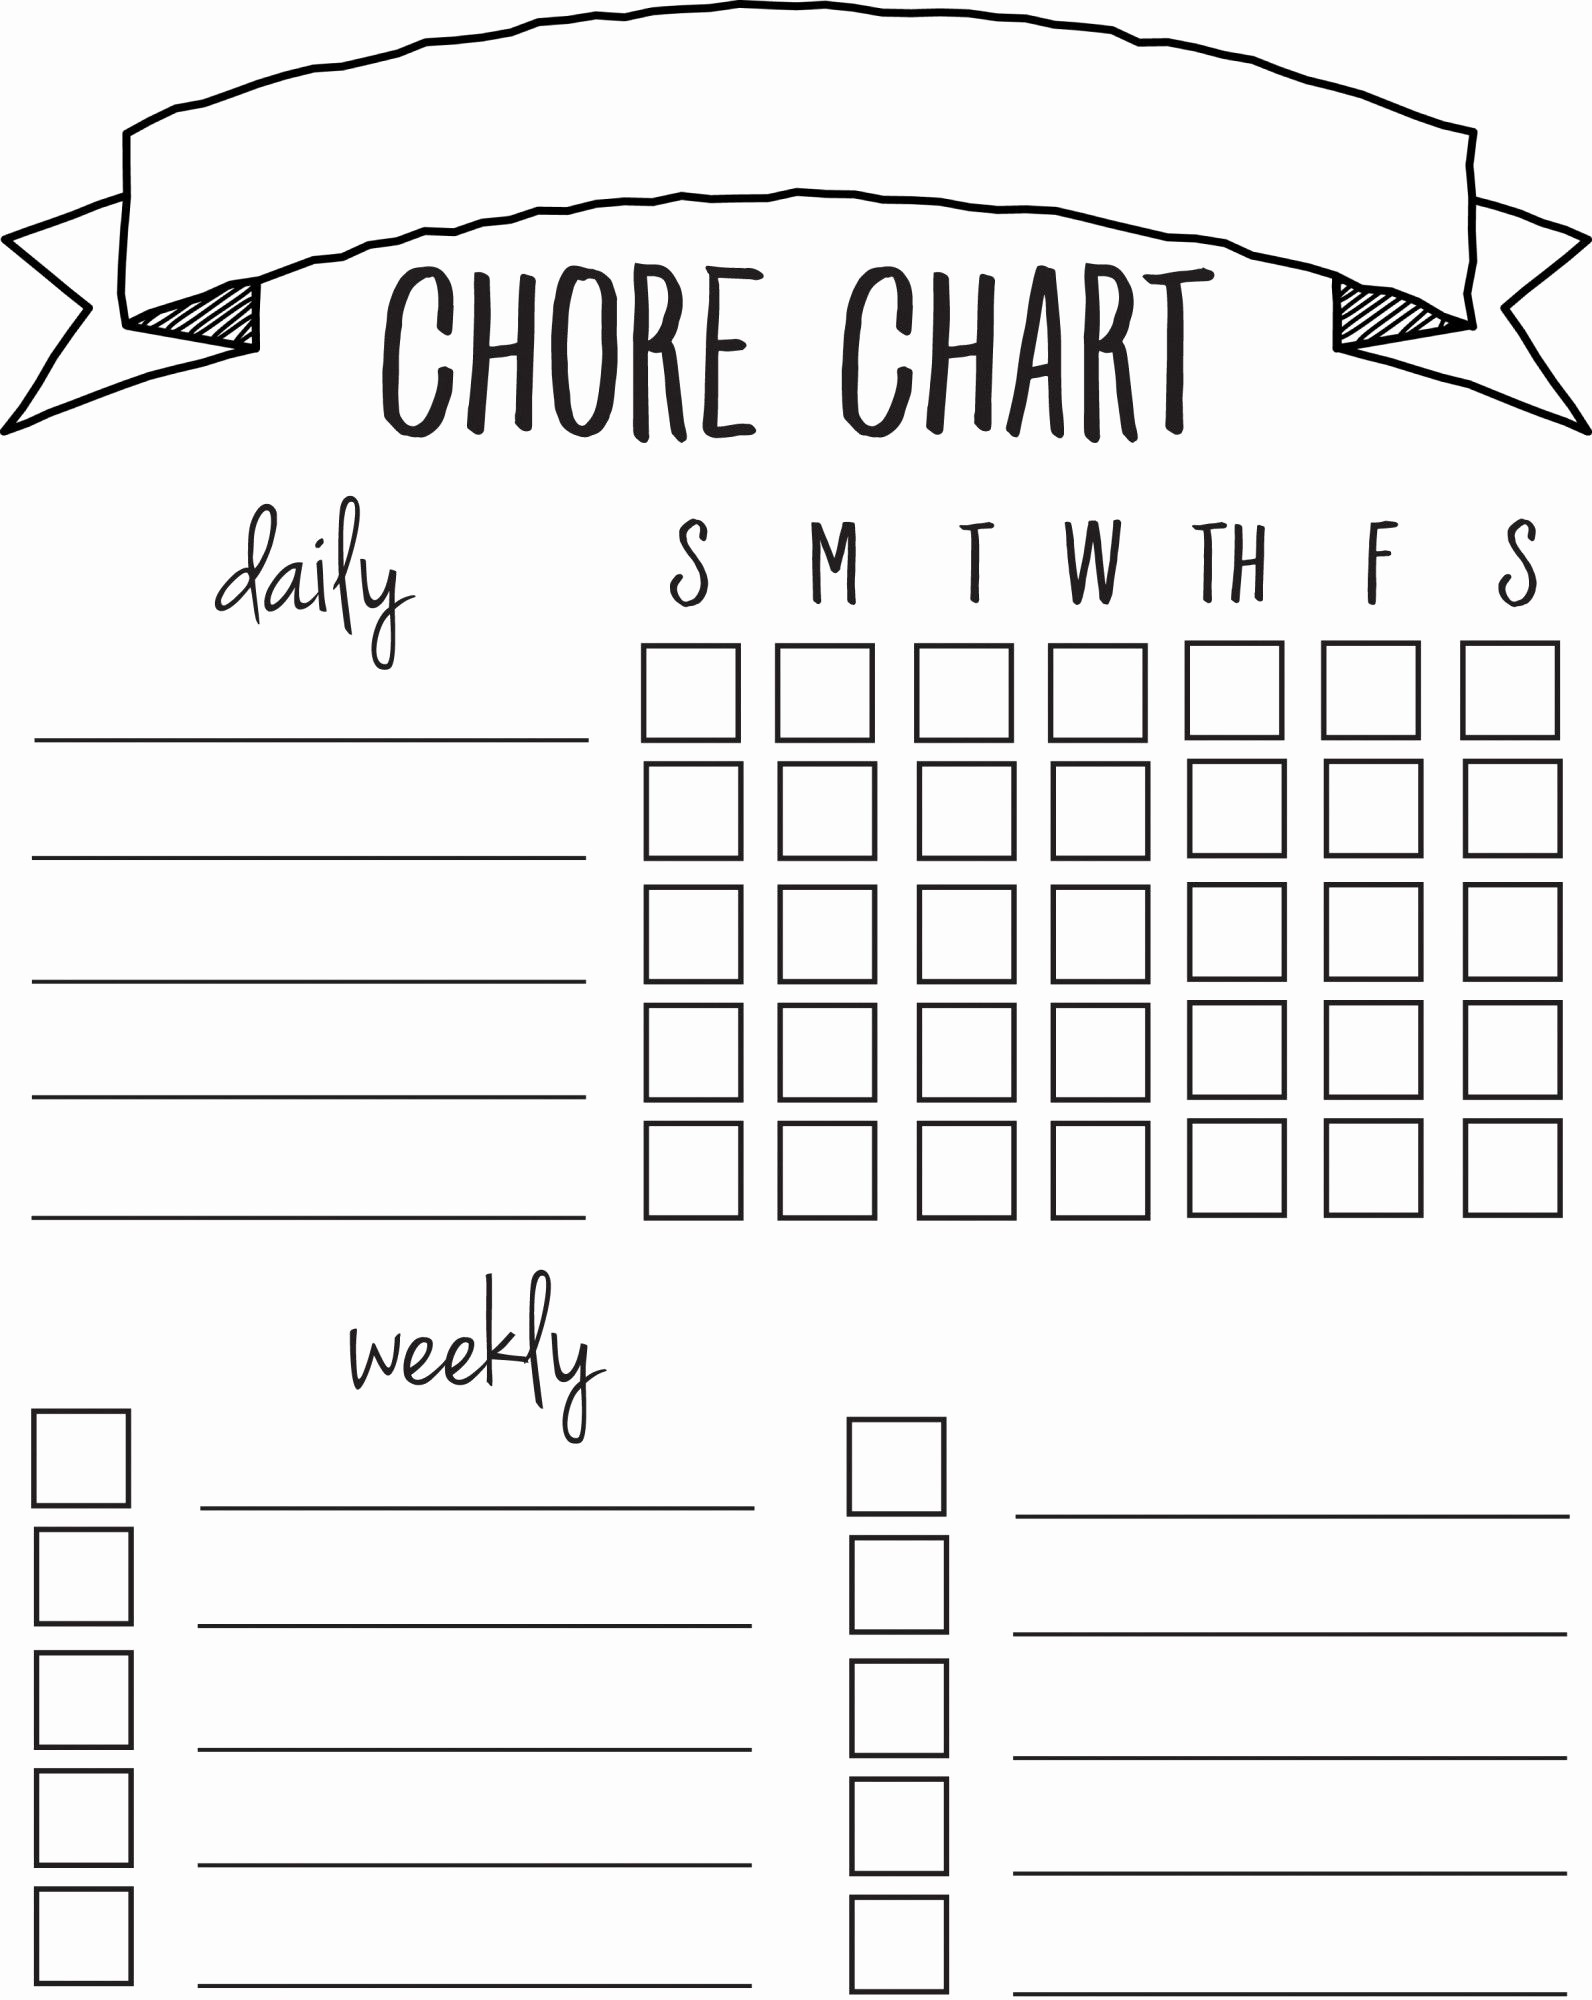 Chore List Template for Adults Fresh Diy Printable Chore Chart